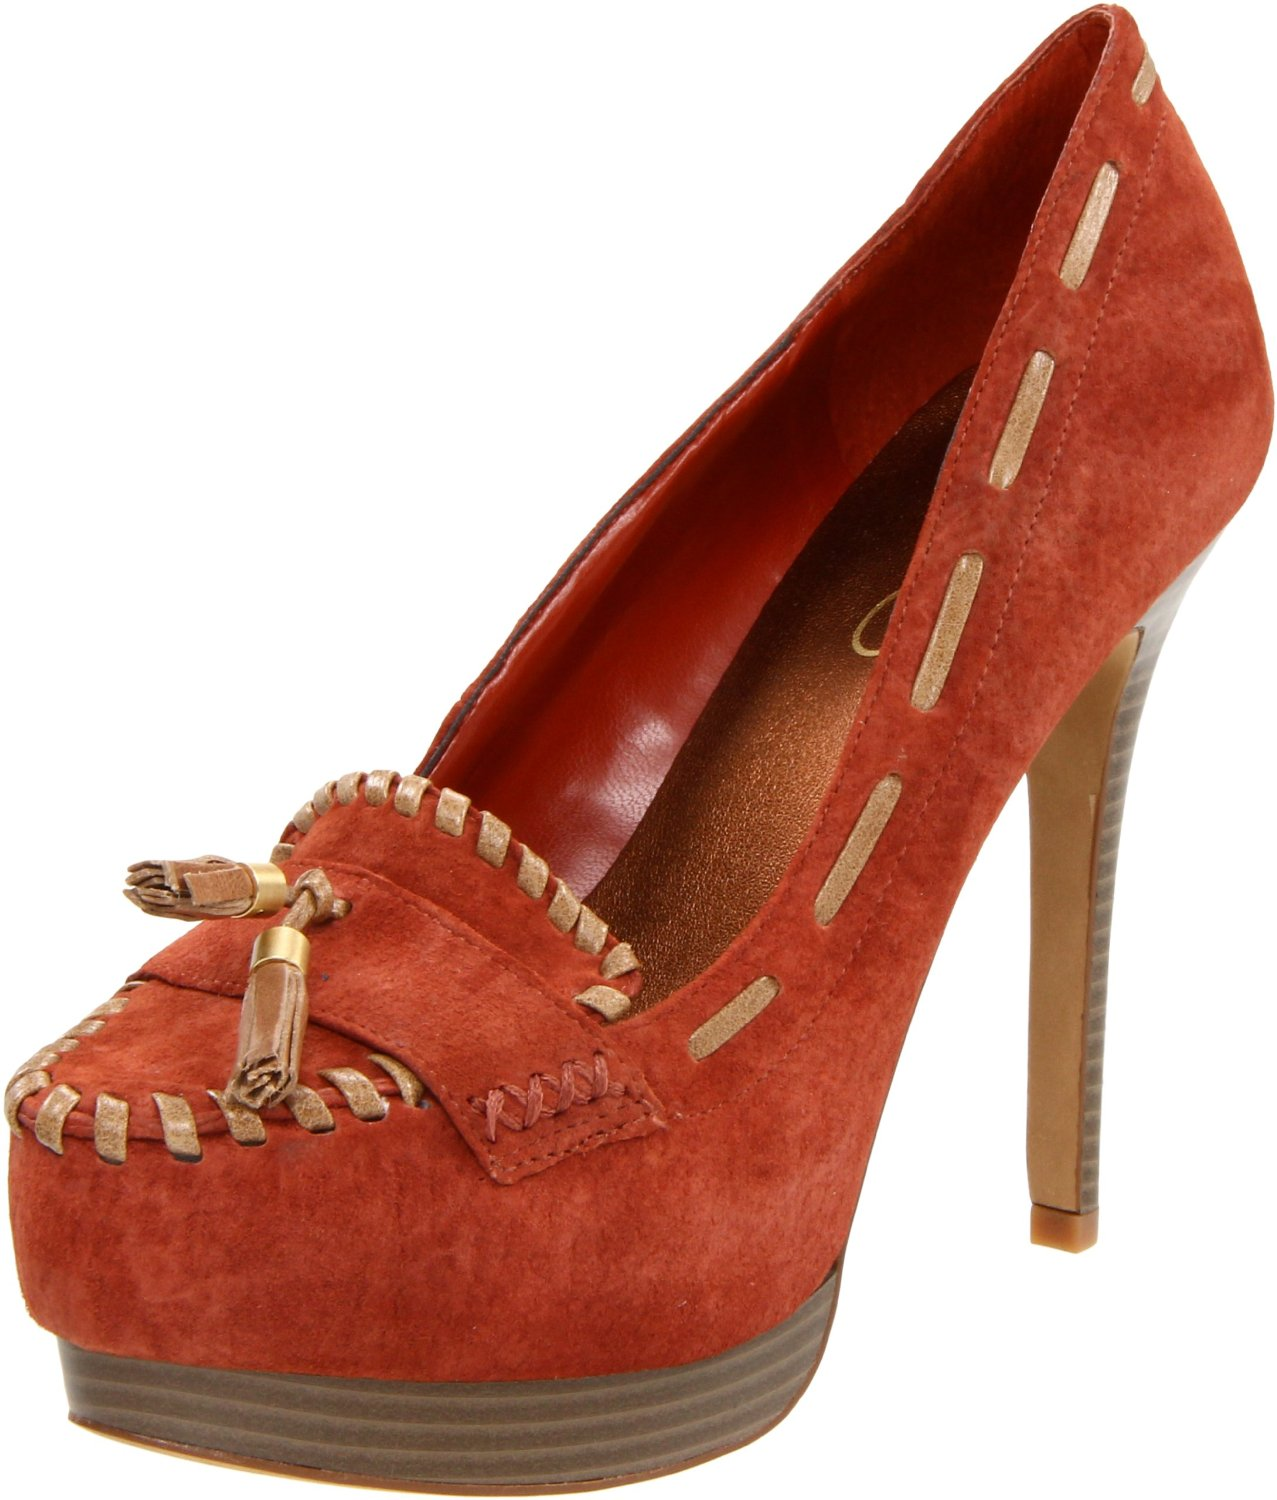 Shop for Jessica Simpson Shoes for Women, Men & Kids | Dillard's at kolyaski.ml Visit kolyaski.ml to find clothing, accessories, shoes, cosmetics & more. The Style of Your Life.